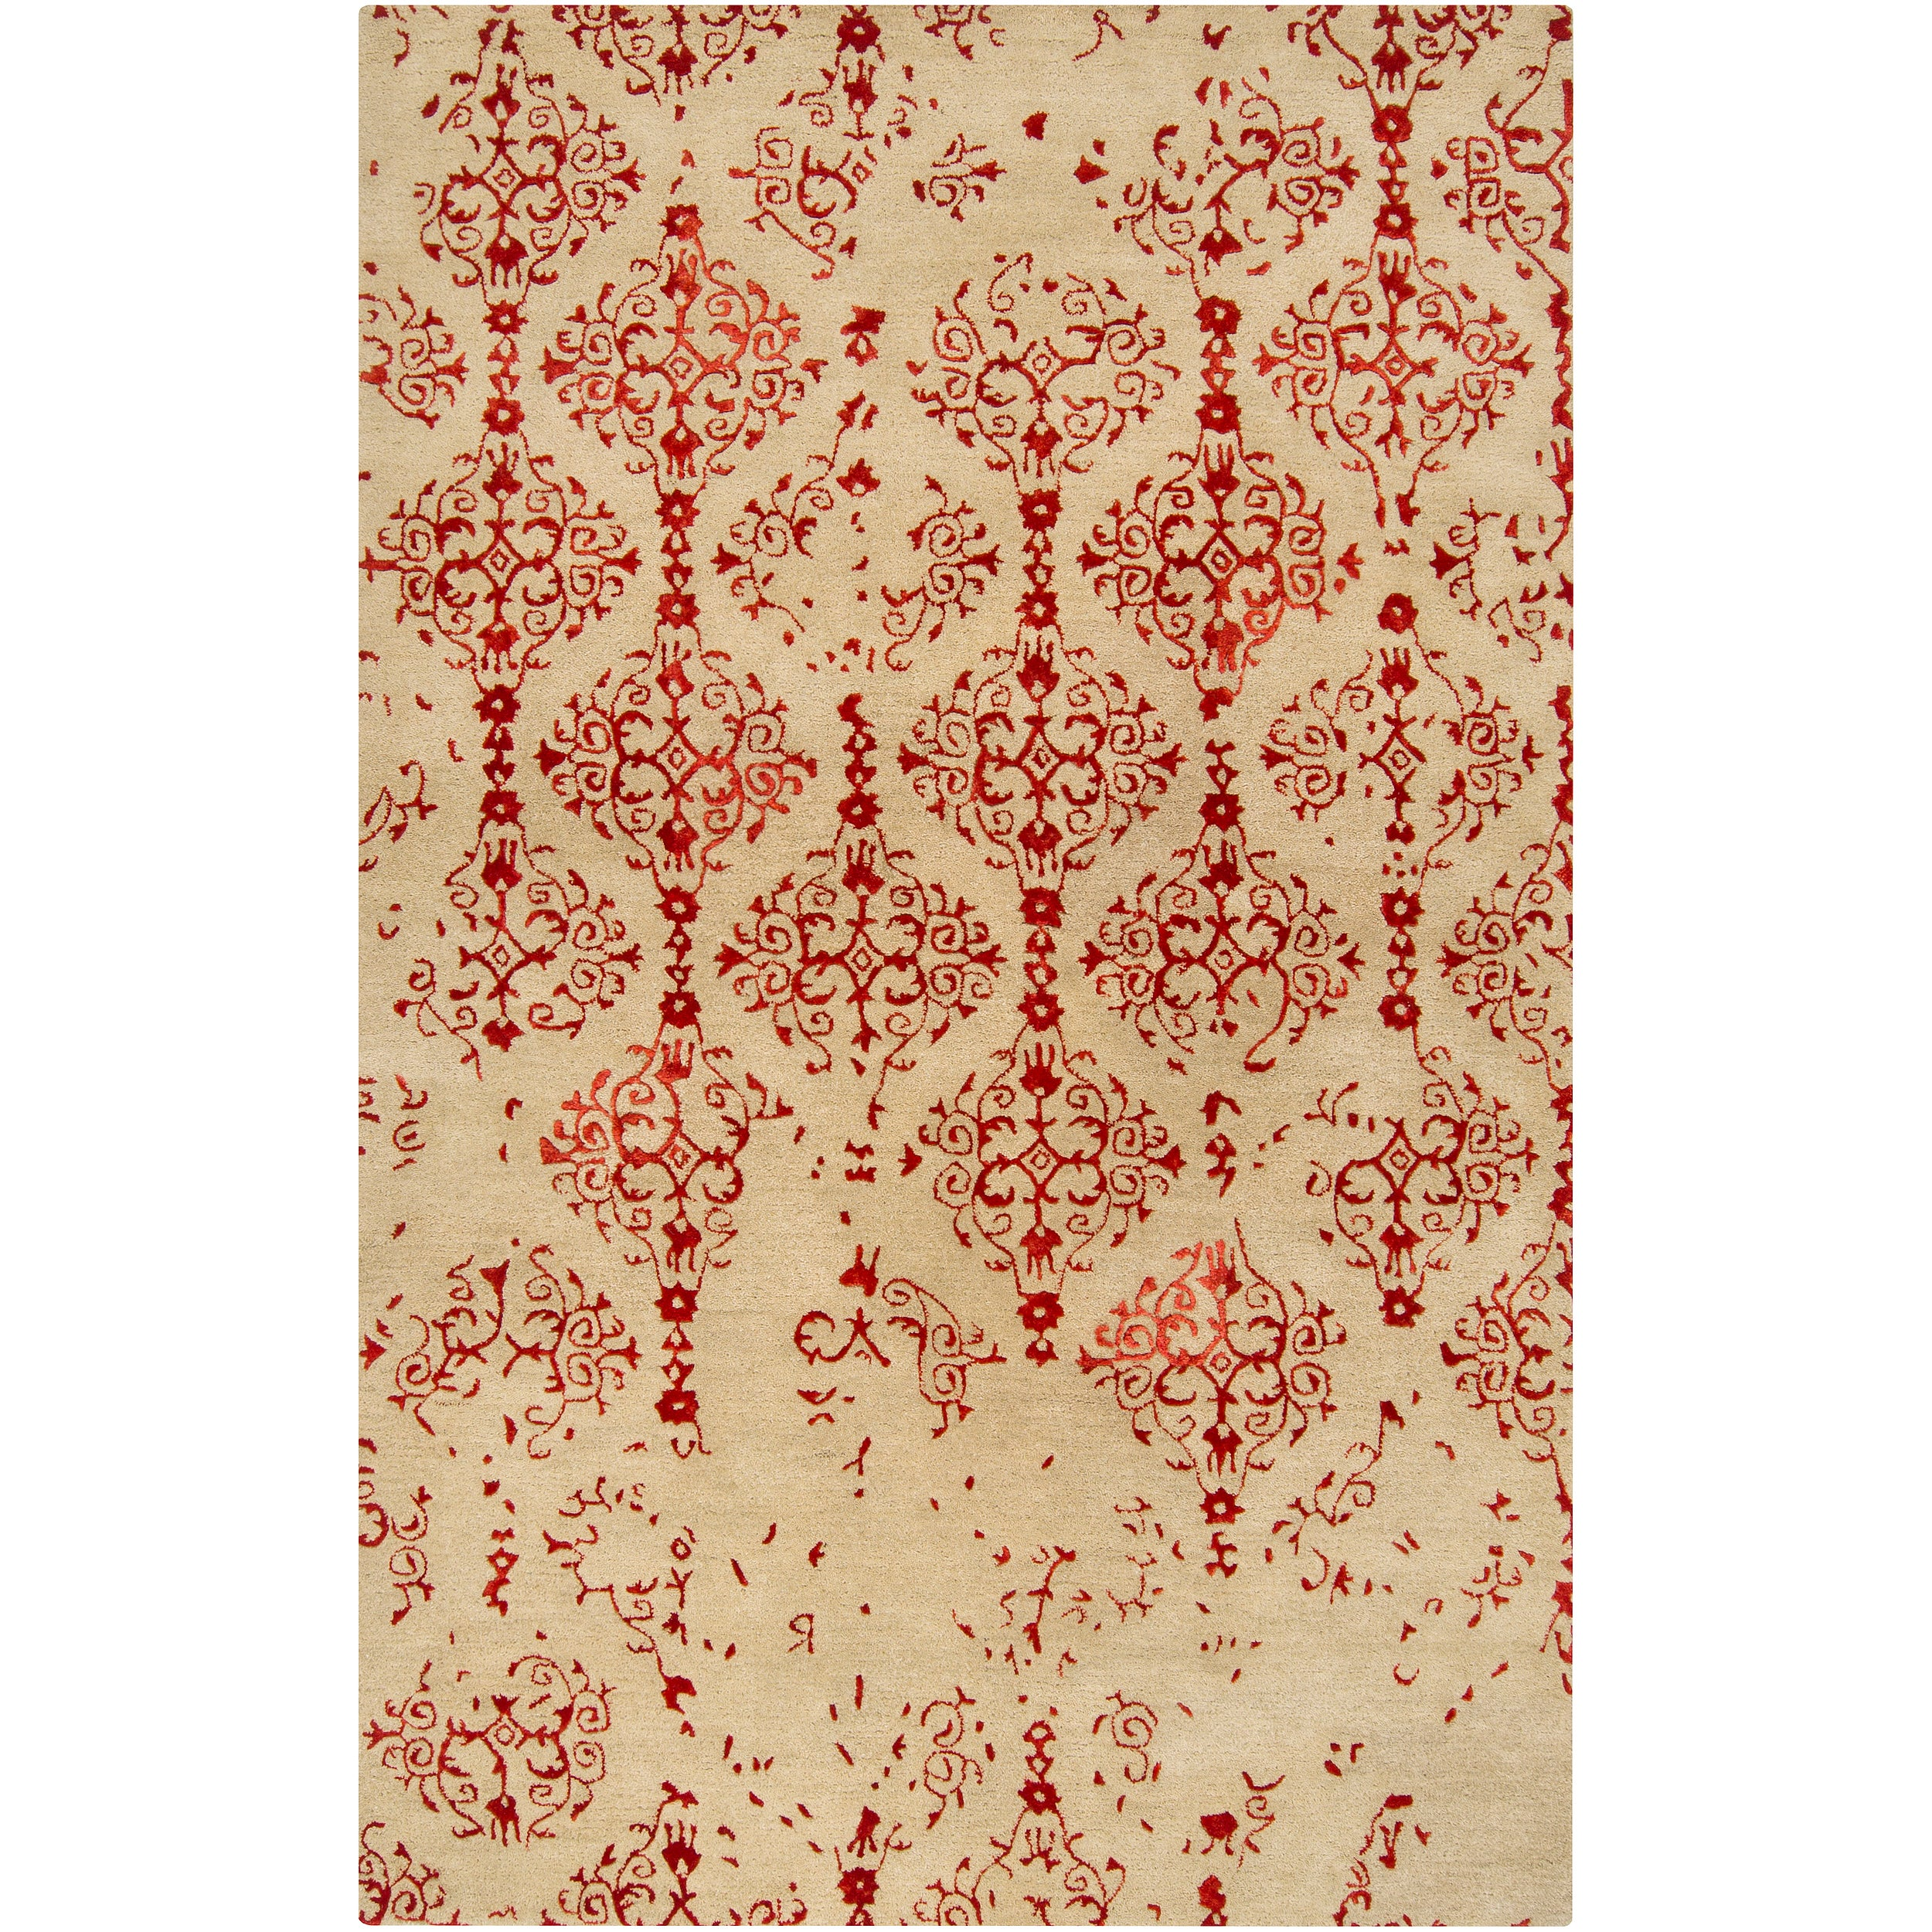 Hand-tufted Contemporary Pink Accented Pointer New Zealand Wool Abstract Rug (5' x 8') - Thumbnail 0